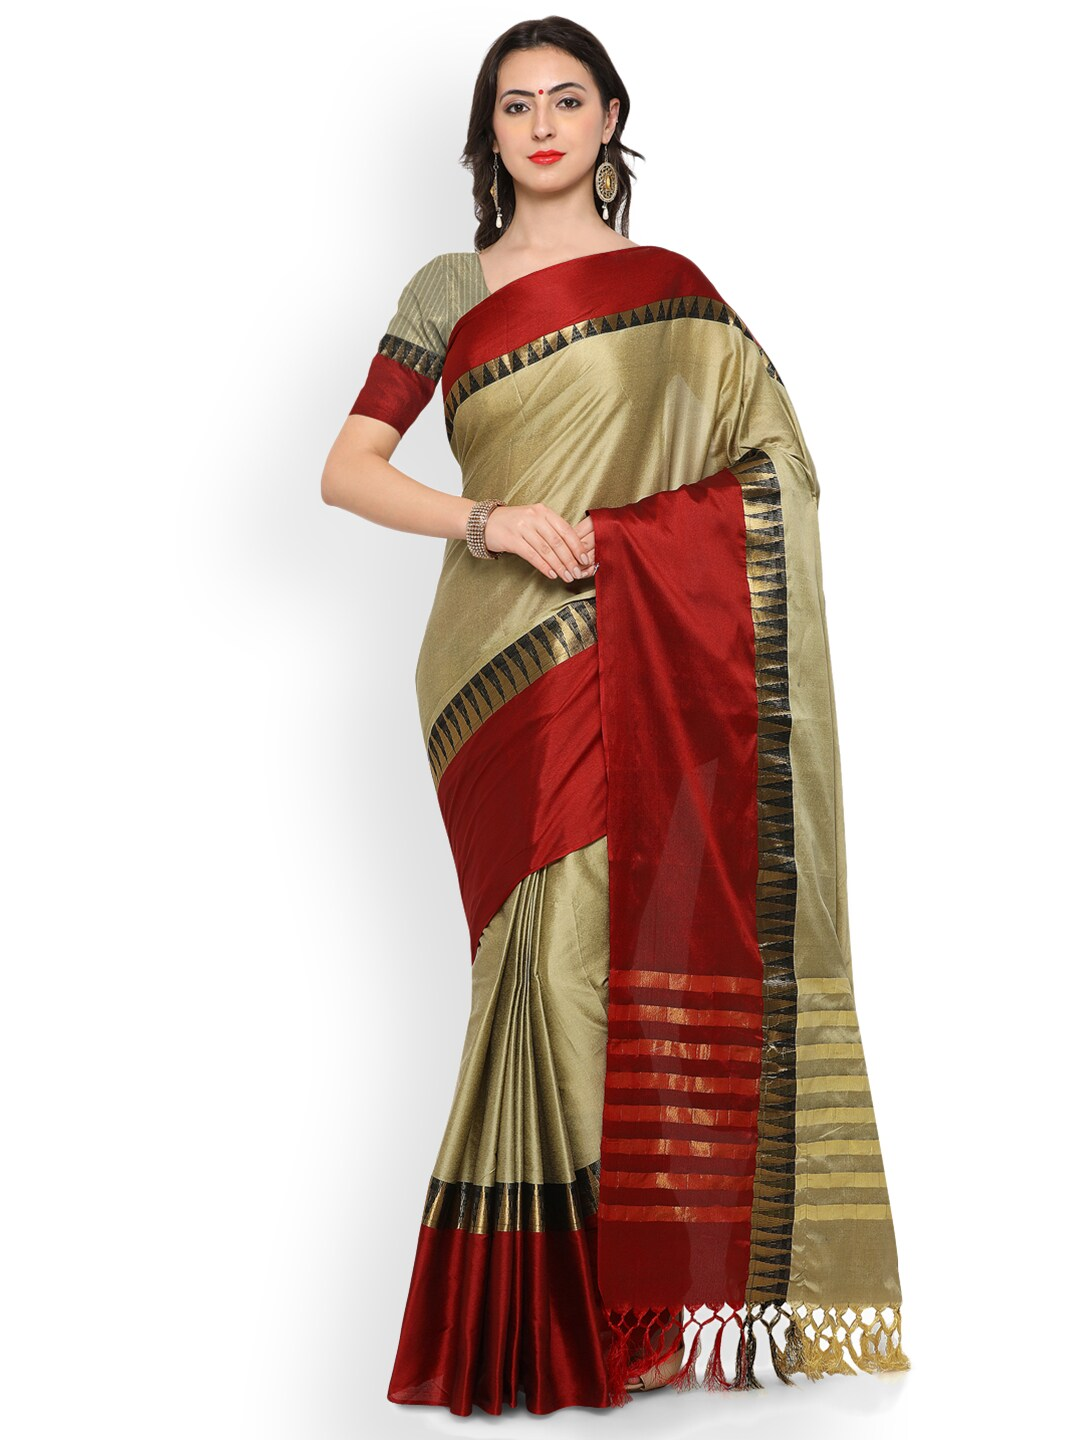 f110e90d92e9a Saree - Buy Sarees Online   Best Price in India